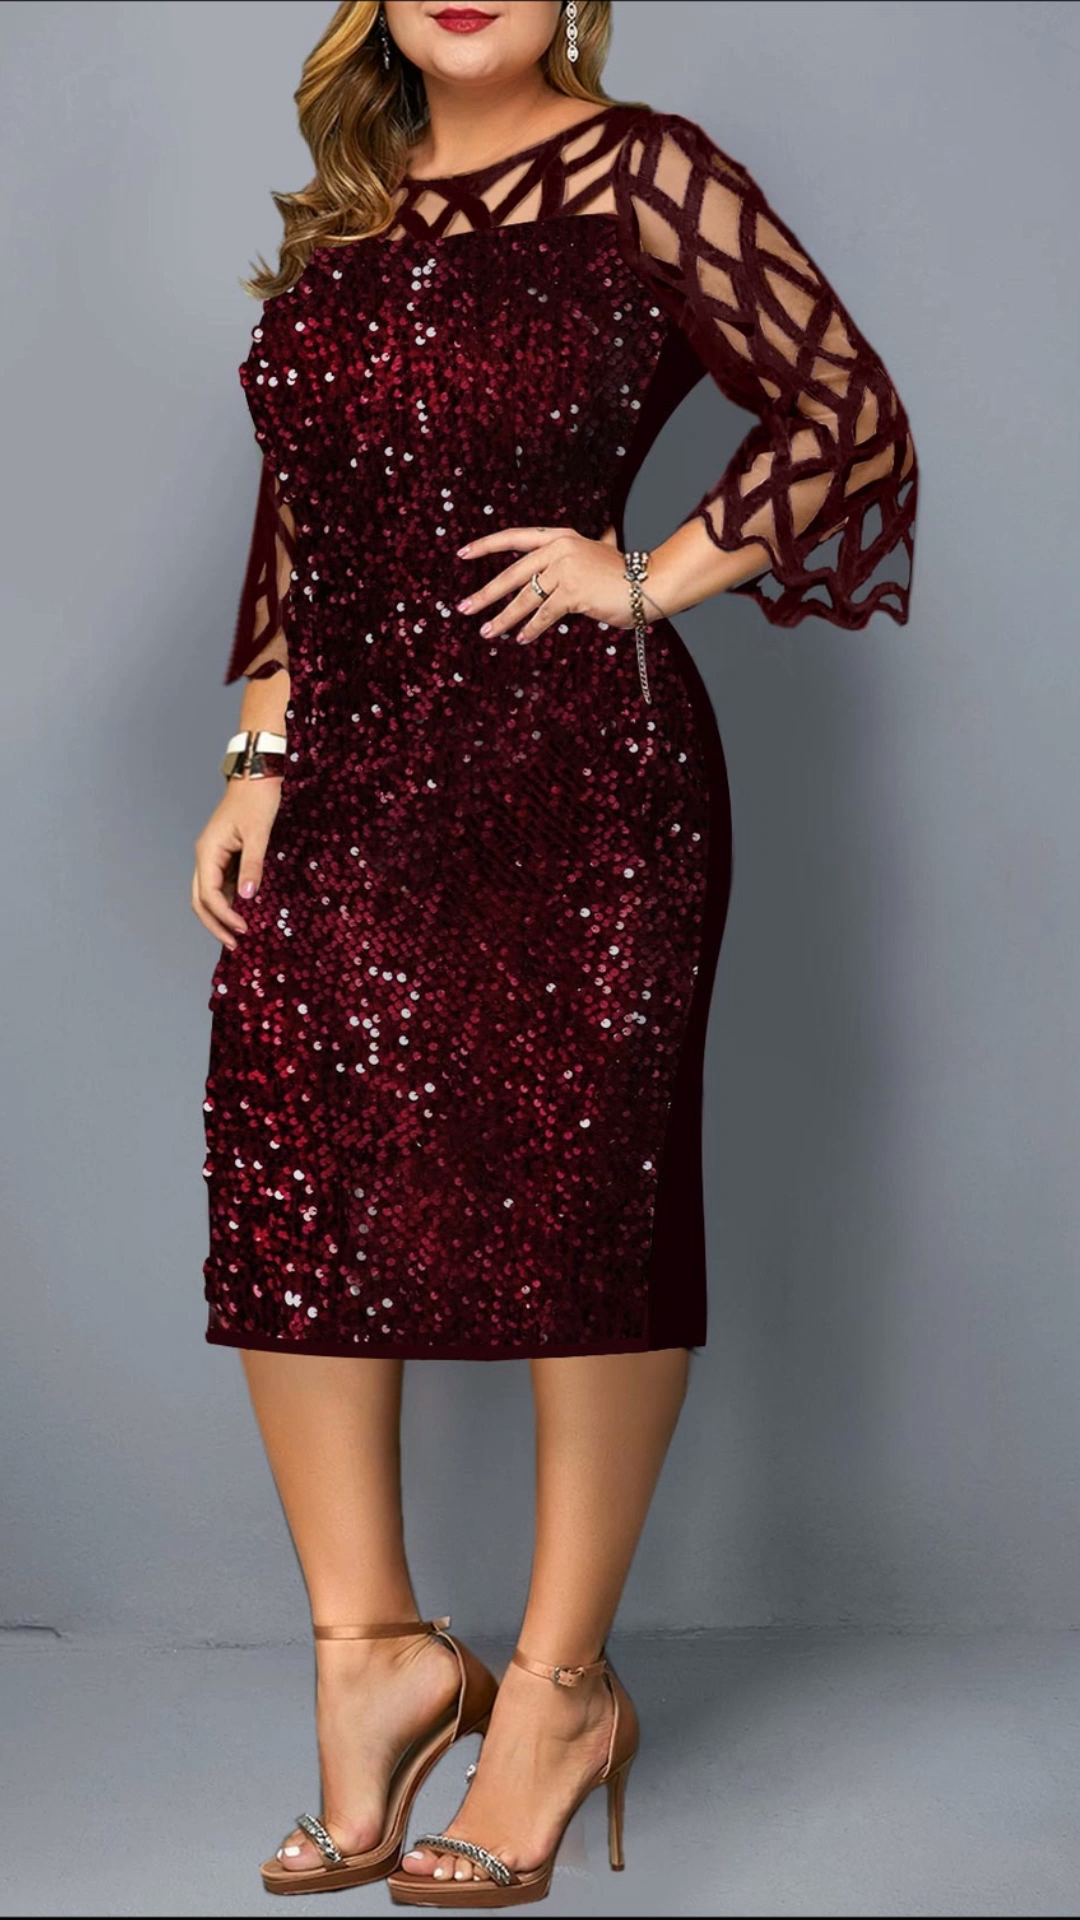 2019 Winter Plus Size Dress Outfits New Arrivals D